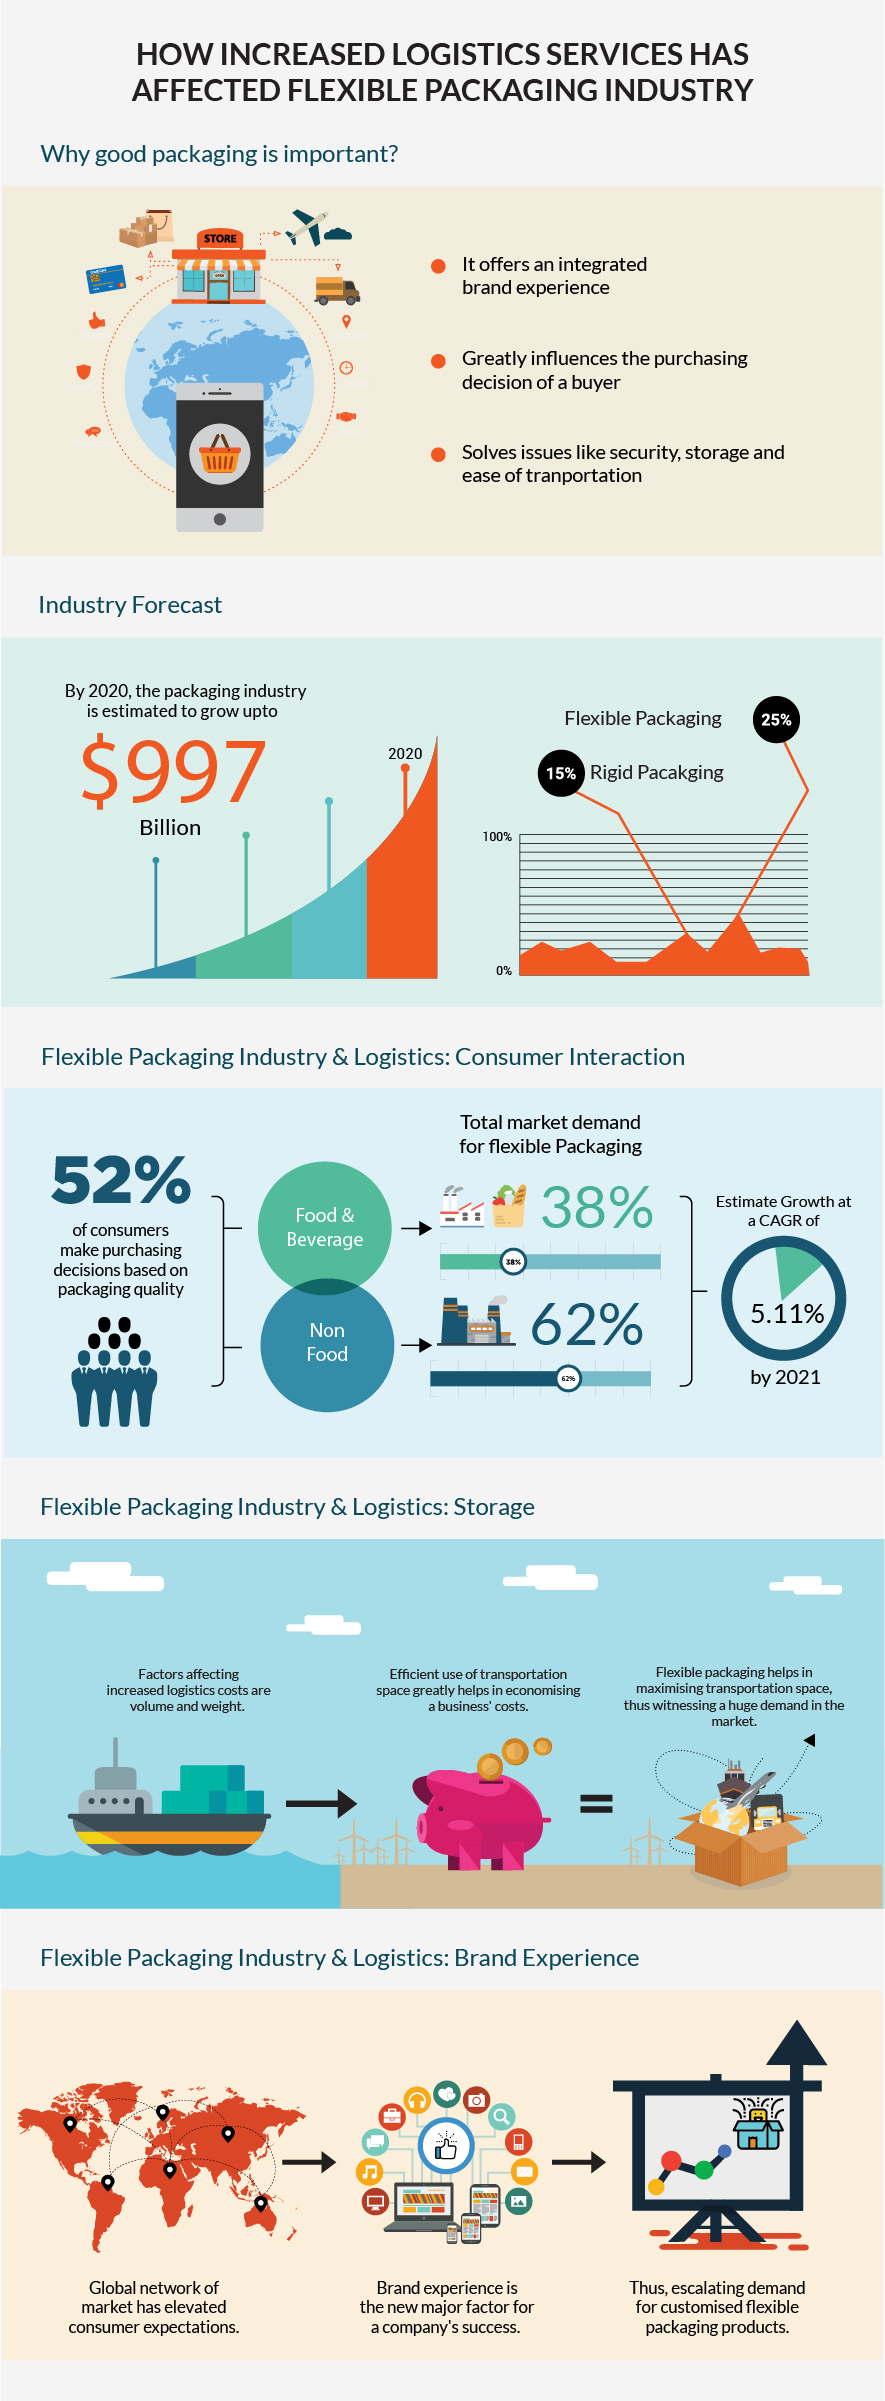 How increase in logistics services has affected the flexible packaging industry